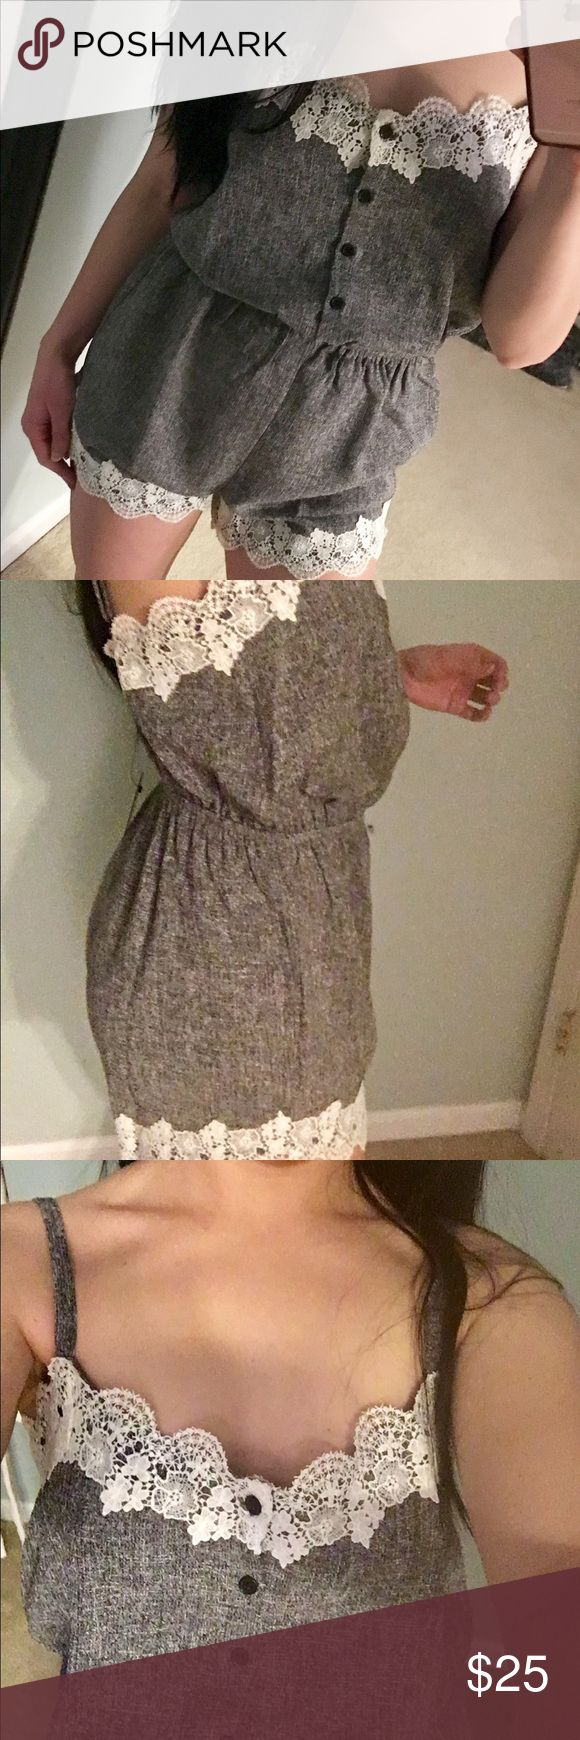 """Lace Trimmed Romper NWT Adorable gray romper with white lace trim. Adjustable straps. 100% polyester. Wearing size M in the pictures; I'm 5'2"""" 125 lbs, for reference. Smoke-free home, bundle to save✨🎀✨ Pants Jumpsuits & Rompers"""